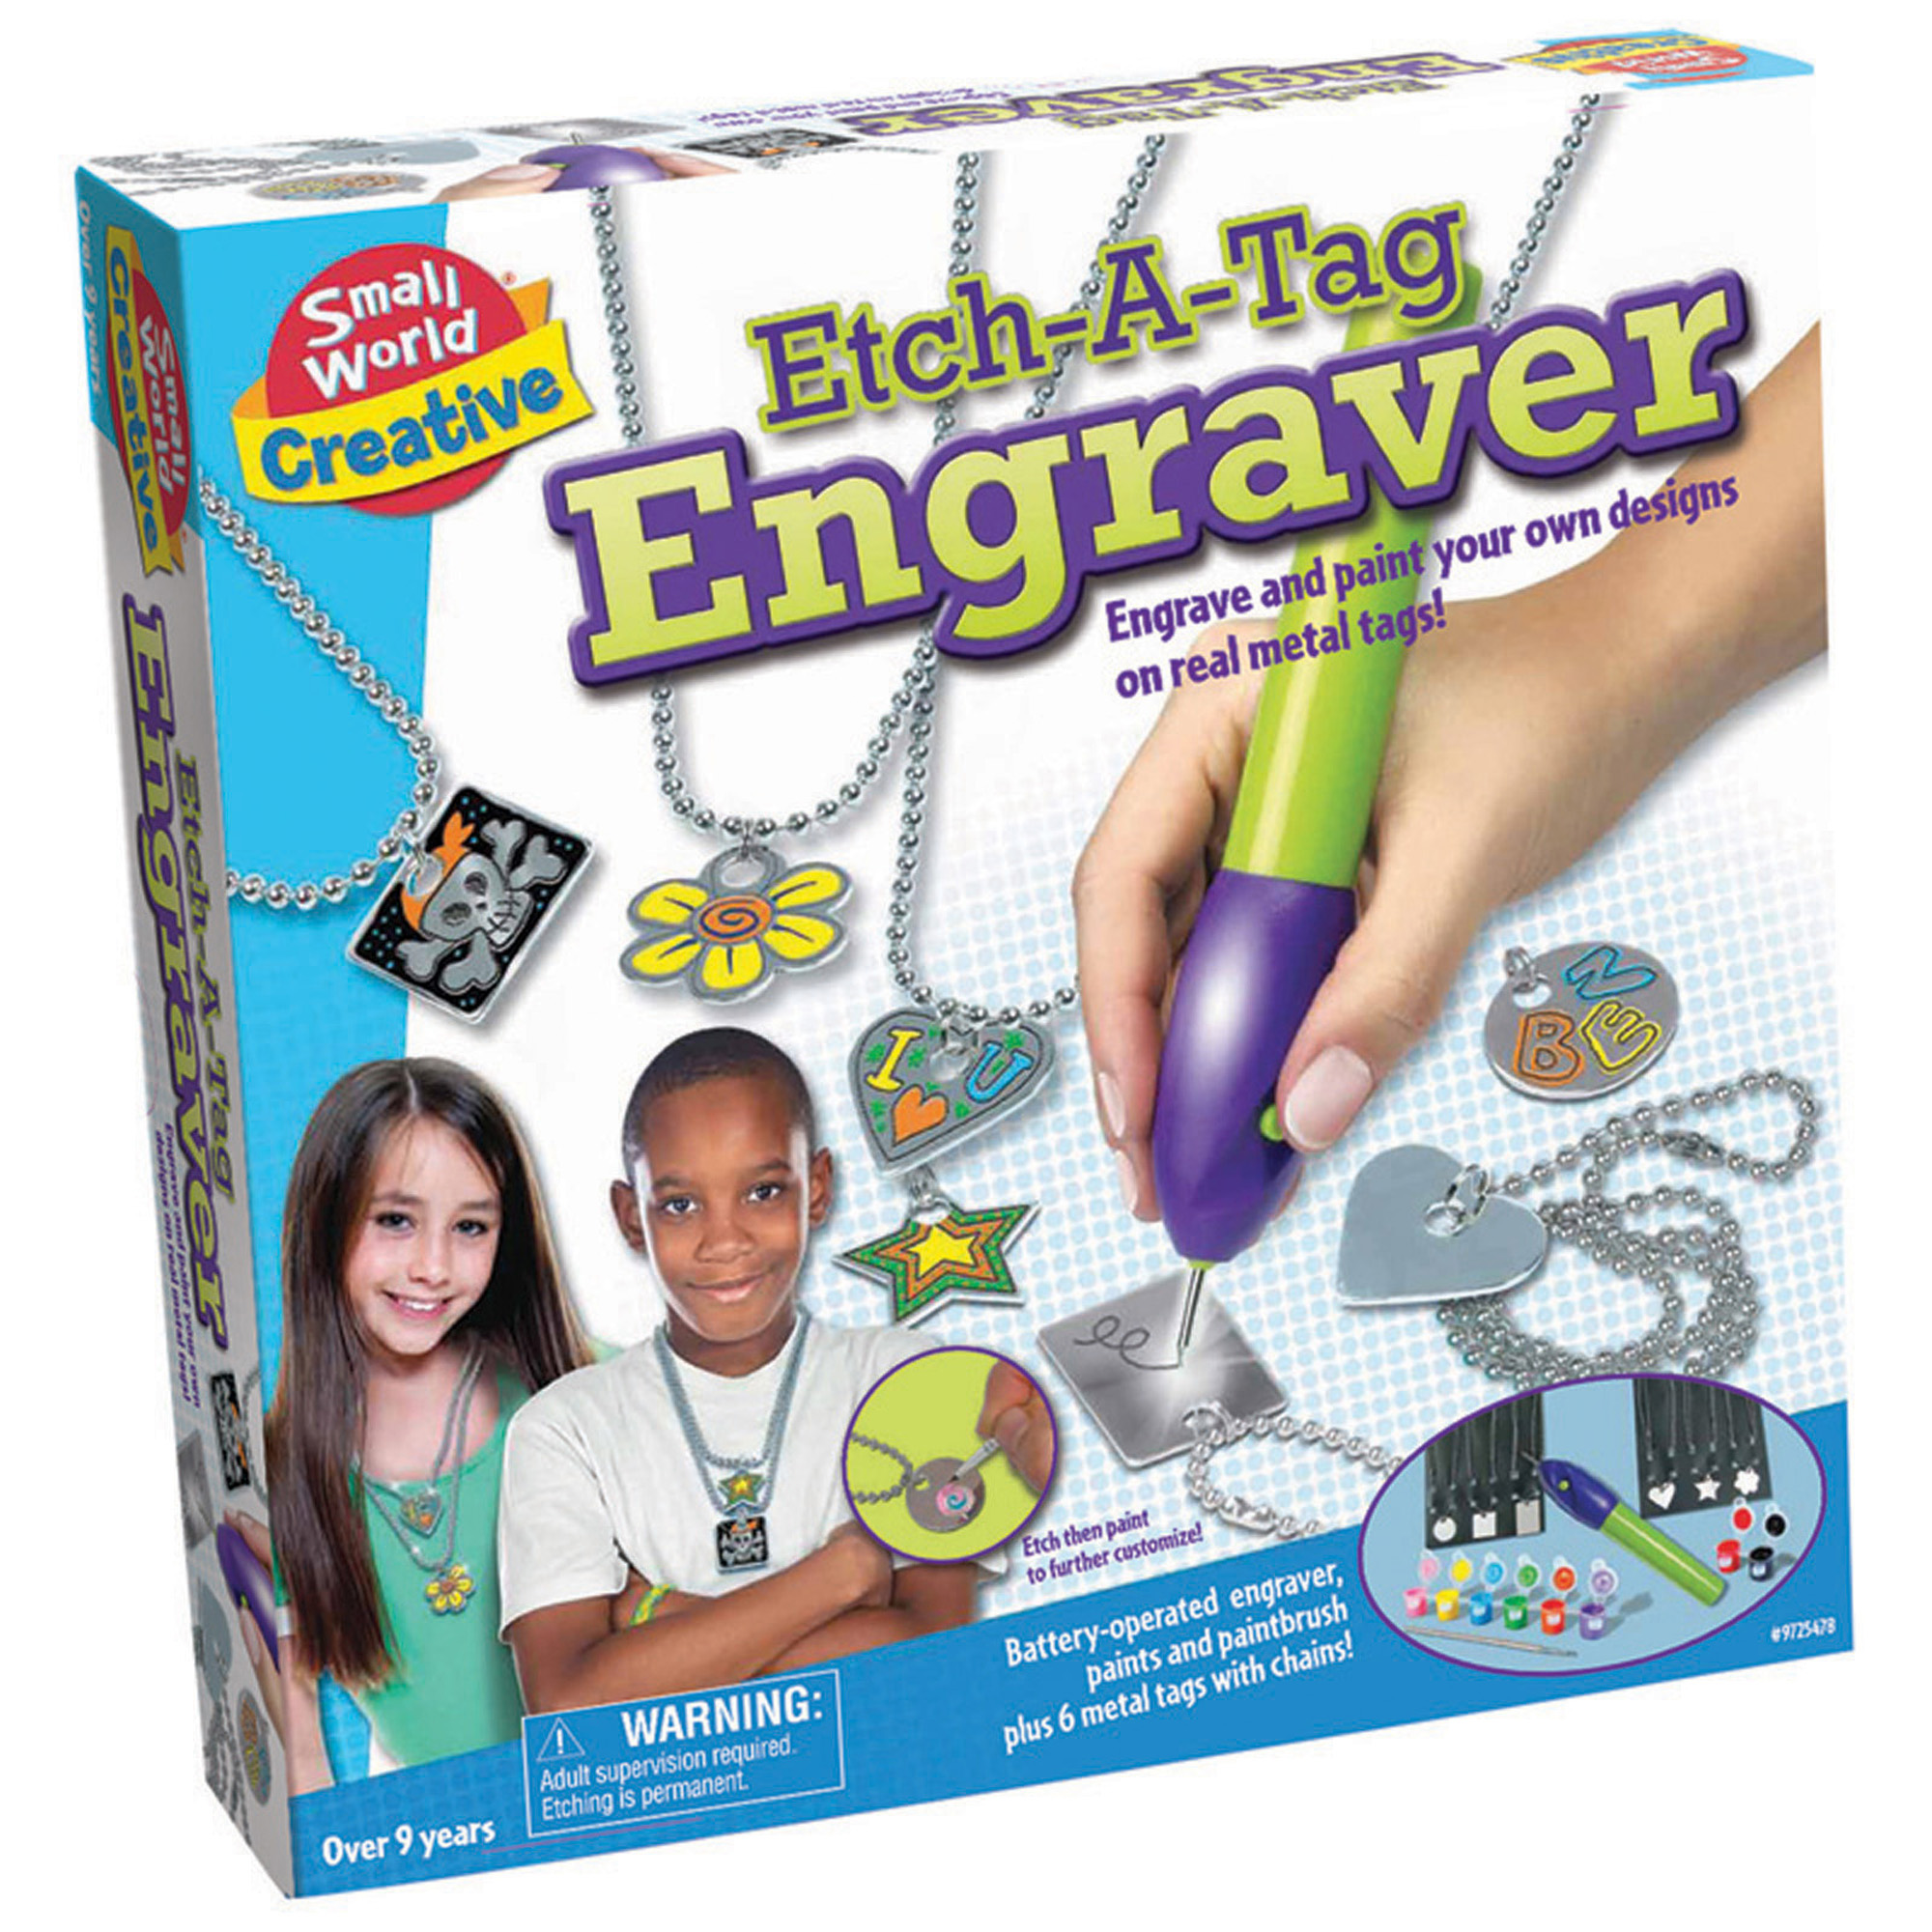 Small World Creative Etch-A-Tag Engraver